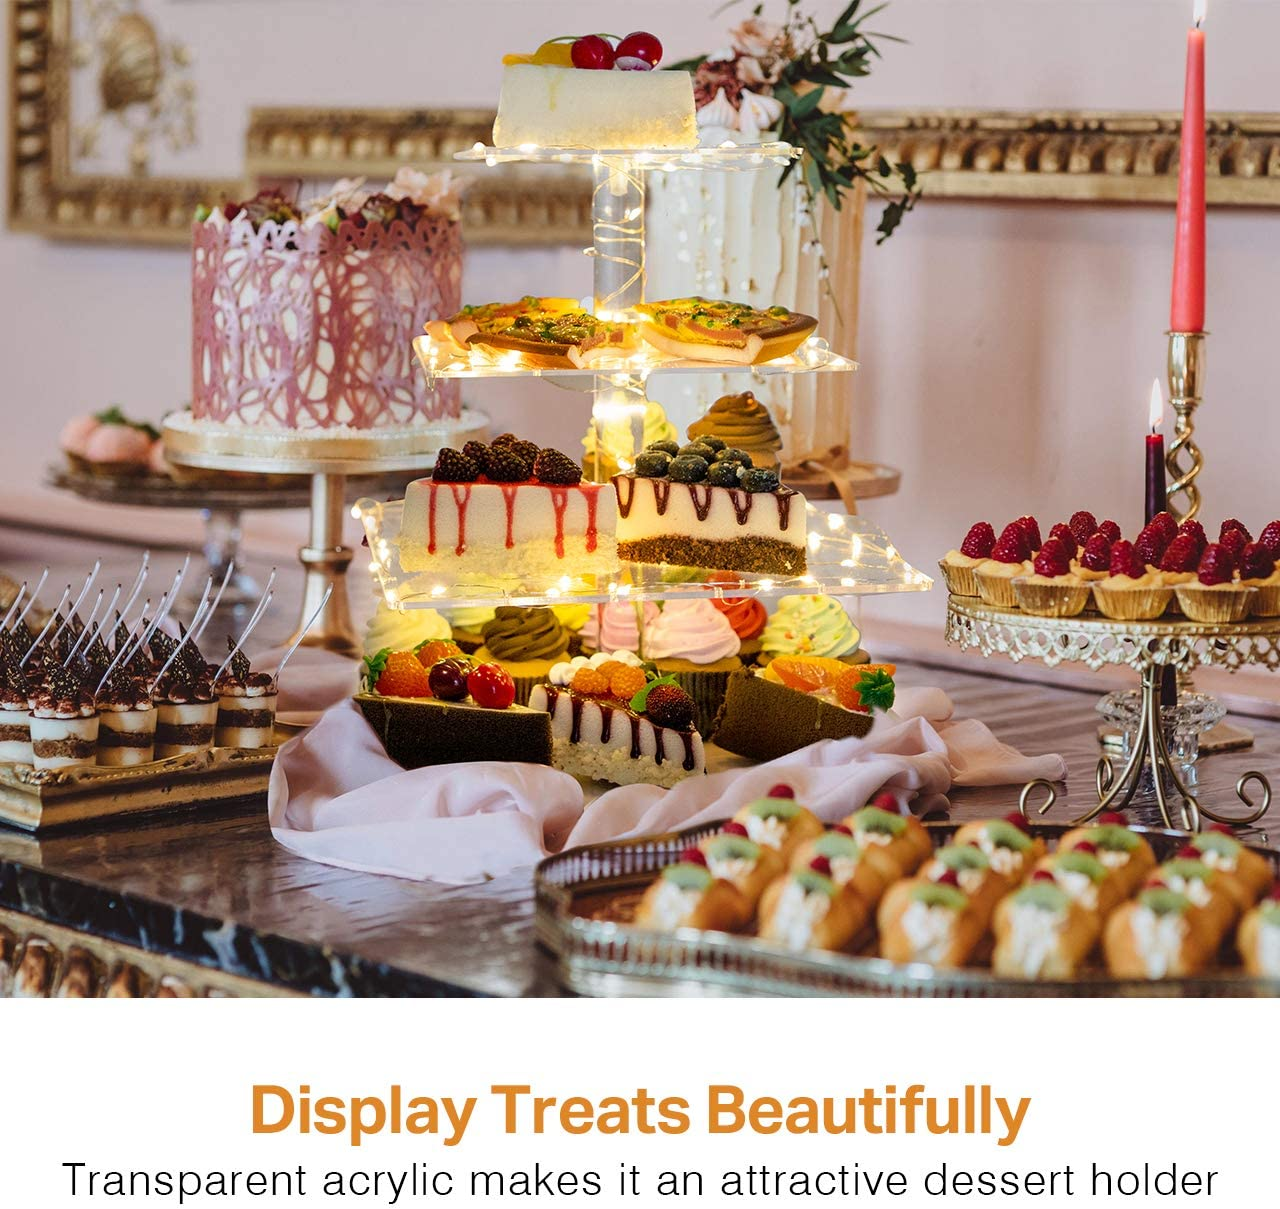 Kootek 2 Pack 4 Tier Acrylic Cupcake Stand with 8 Pcs LED String Lights Dessert Tower Tiered Tree Square Cake Display Stands Pastry Serving Platter for Party Wedding Birthday Holidays Buffets